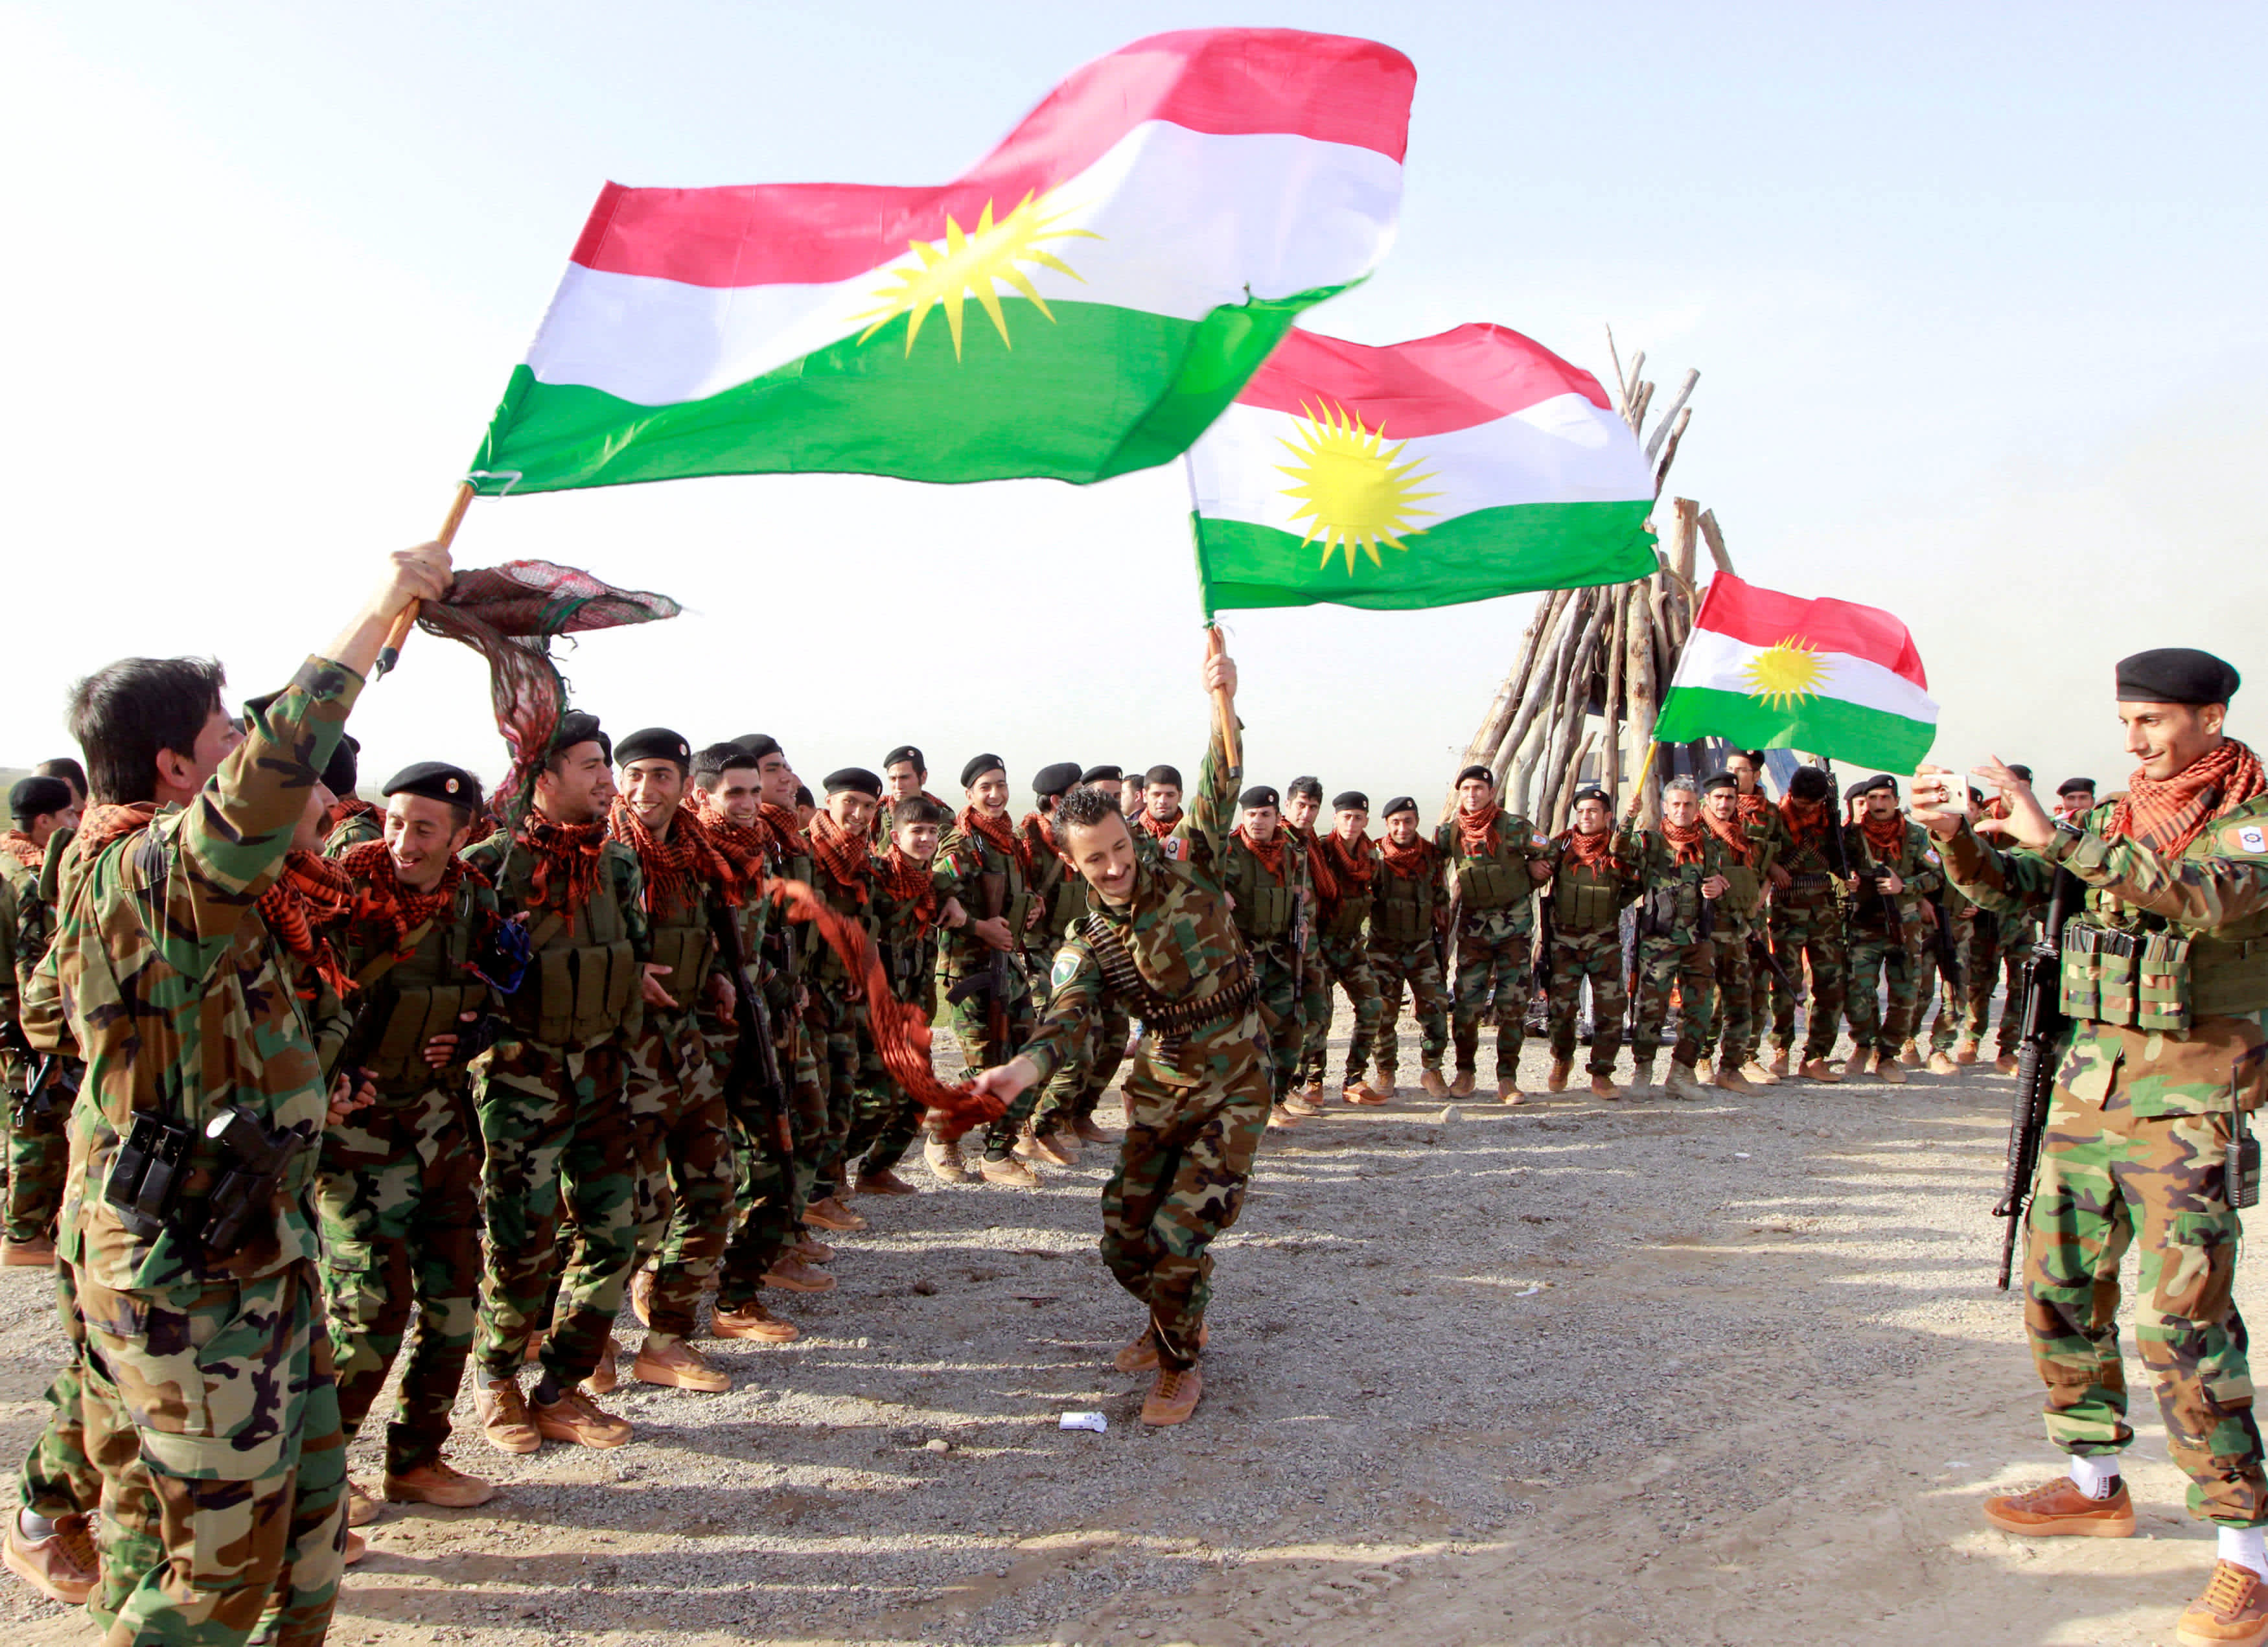 Kurdish Peshmerga forces celebrate Newroz Day, a festival marking spring and the new year, in Kirkuk March 20, 2017 (Reuters)